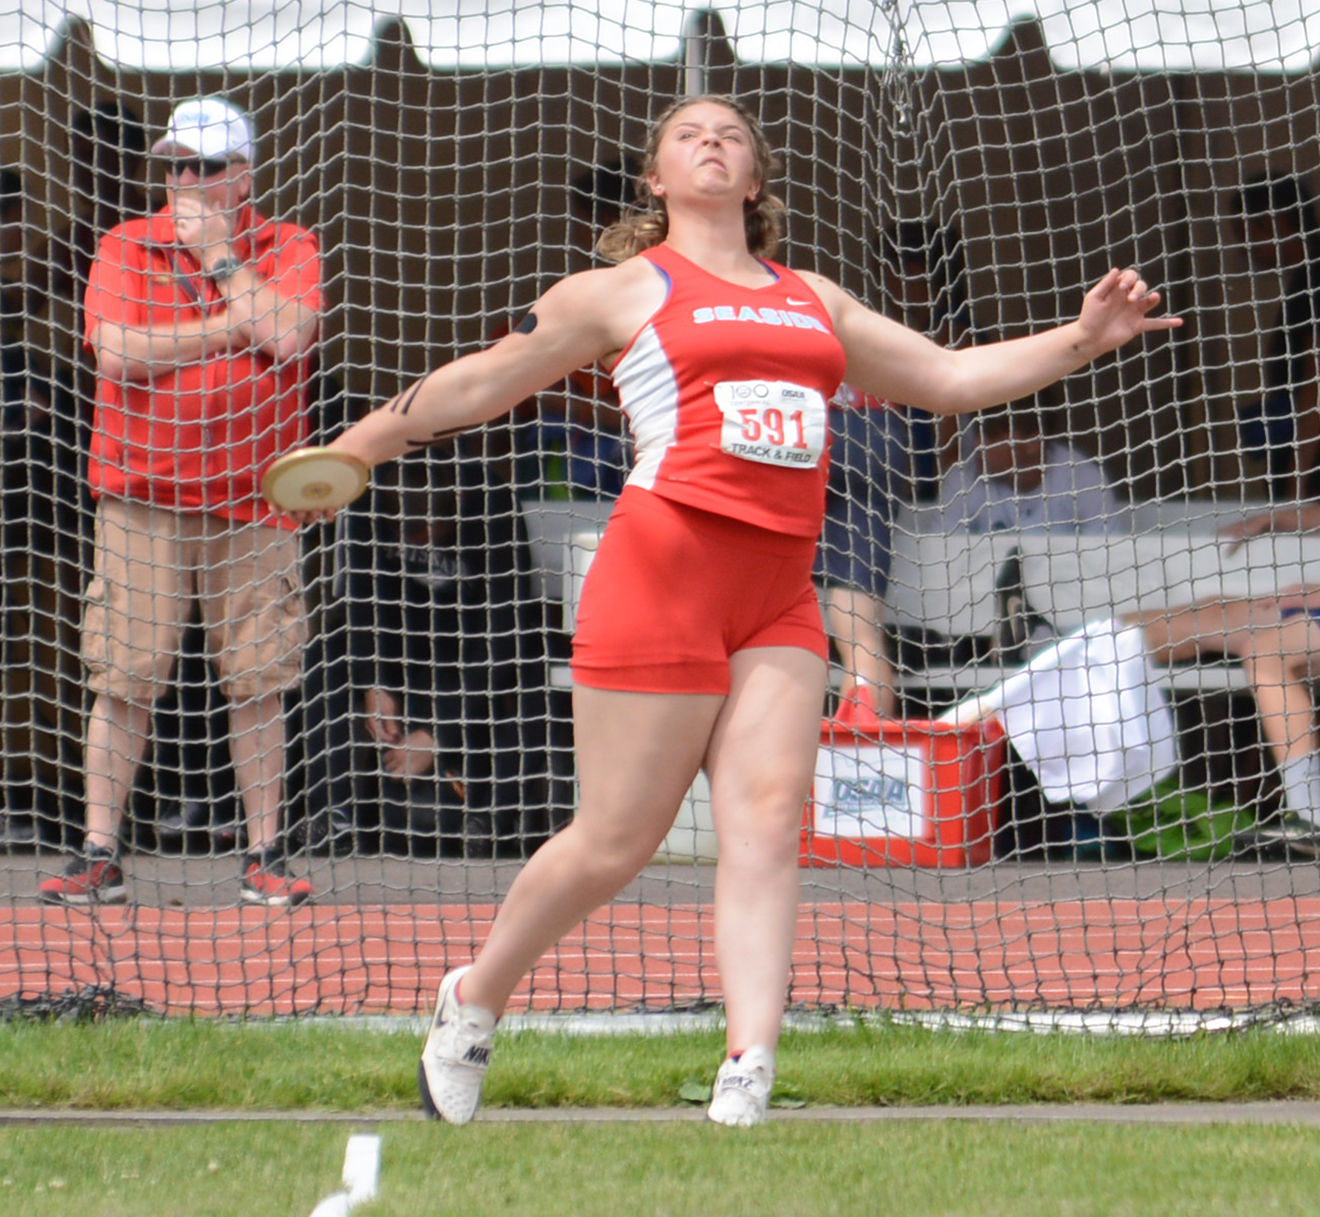 Gretchen Hoekstre, Seaside discus champion